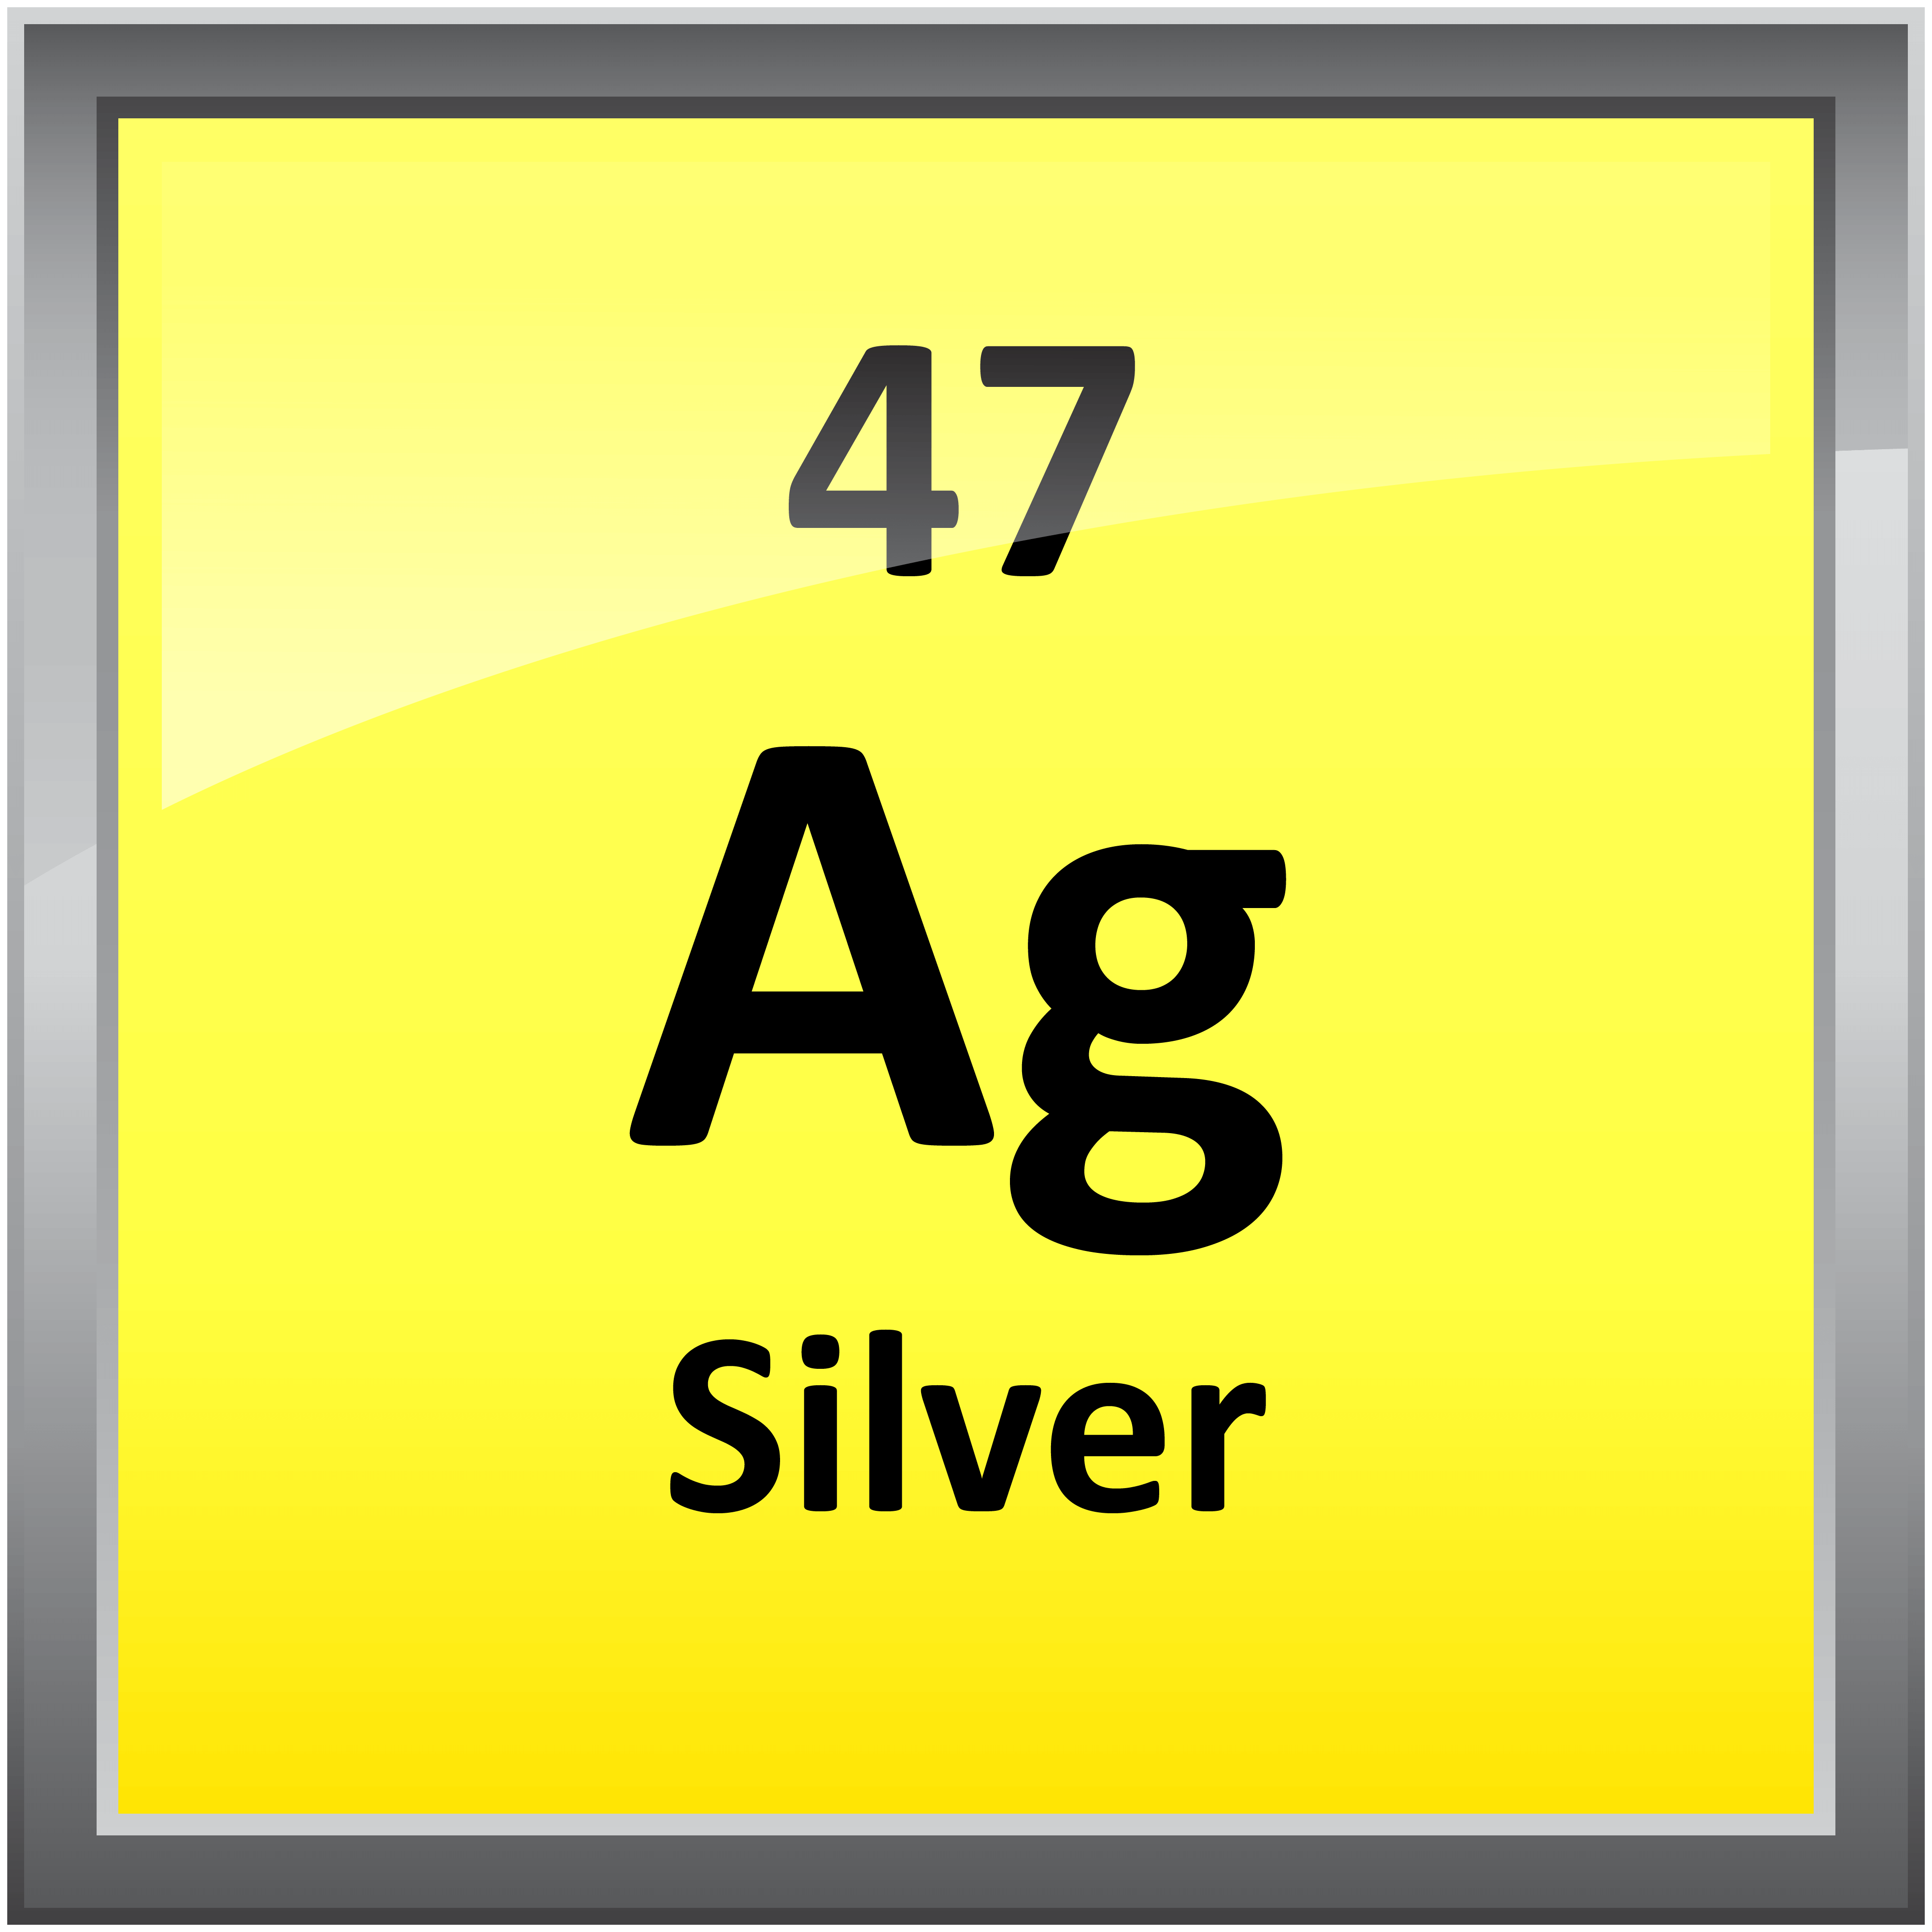 047silver science notes and projects